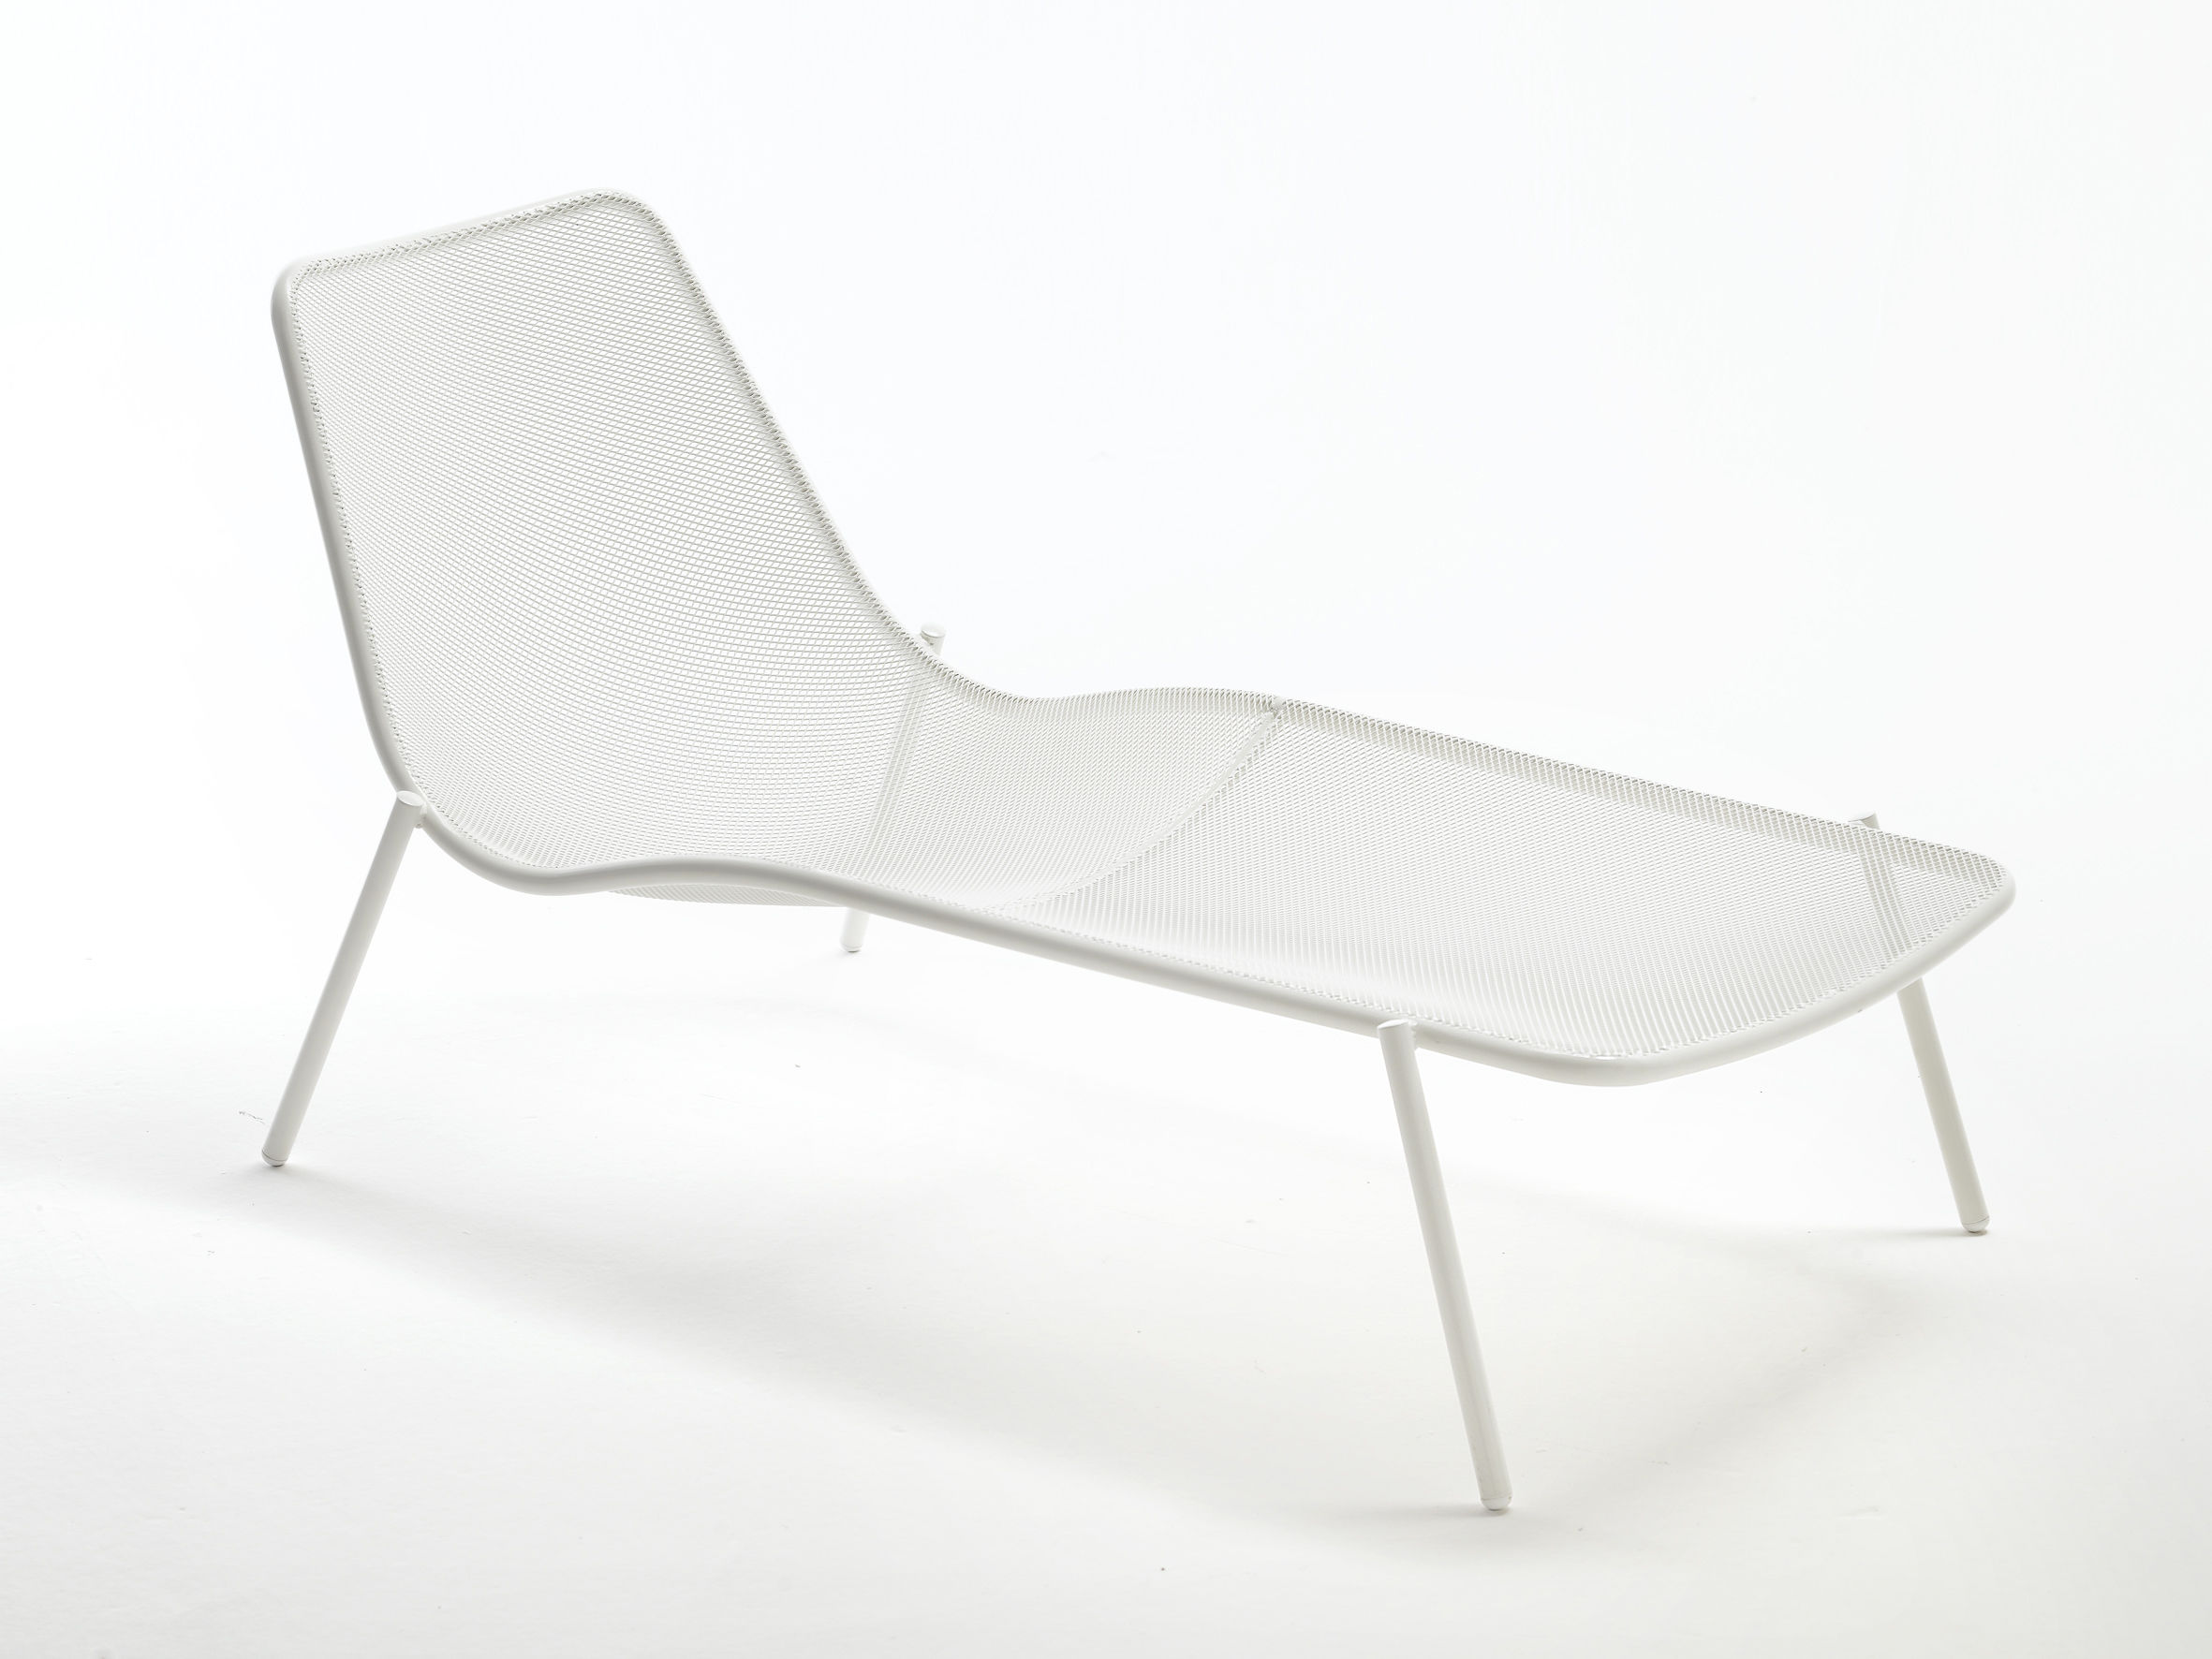 Sun Lounger Round By Emu White L 160 X L 78 X H 77 Made In